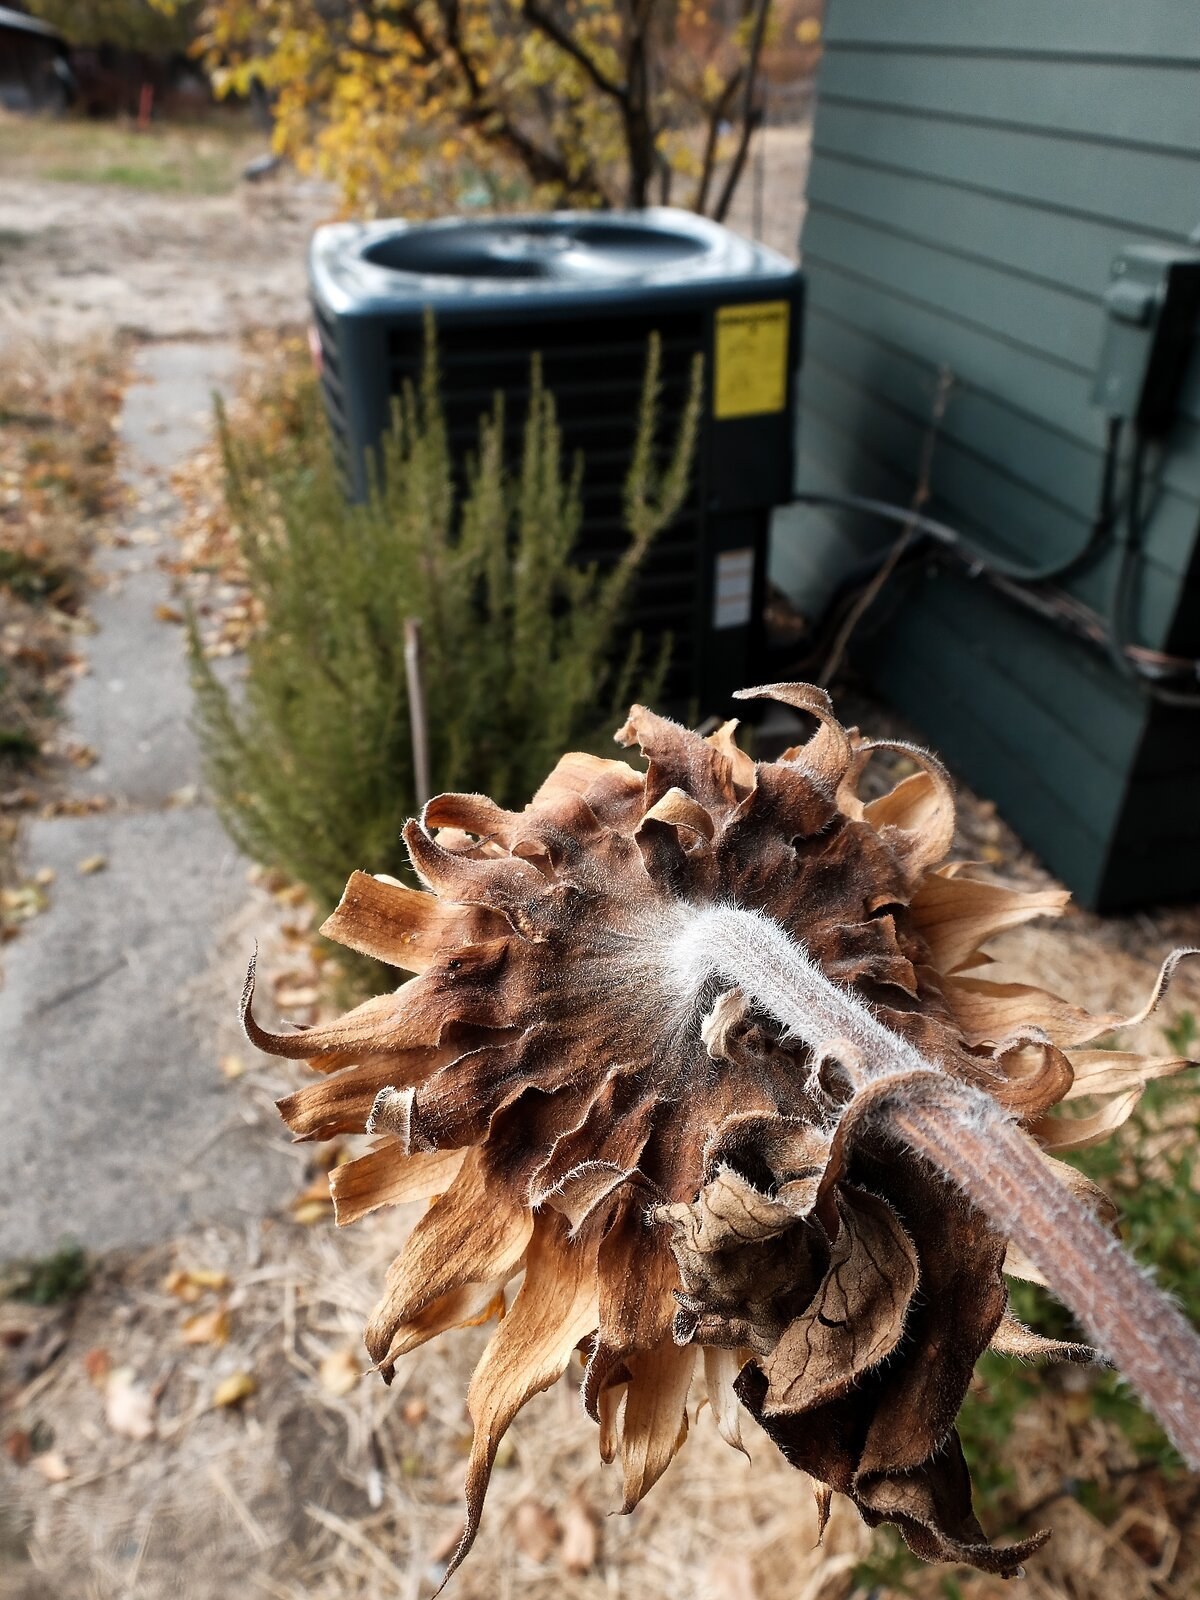 X30_Nov12_Dead_sunflower.jpg